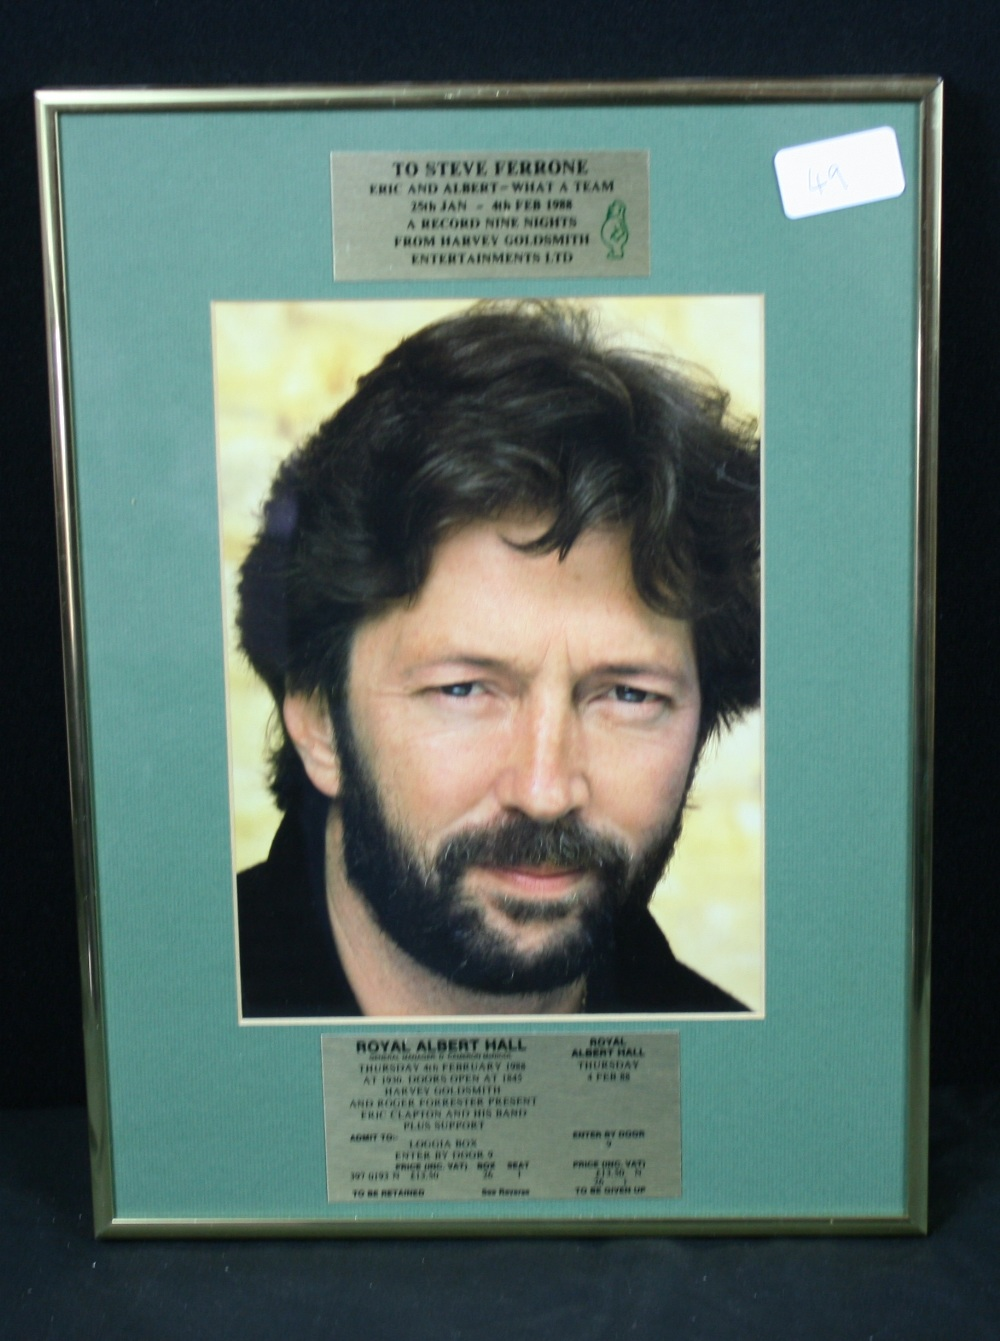 Lot 49 - STEVE FERRONE/ERIC CLAPTON - A framed award/tour plaque presented to Steve Ferrone who was the